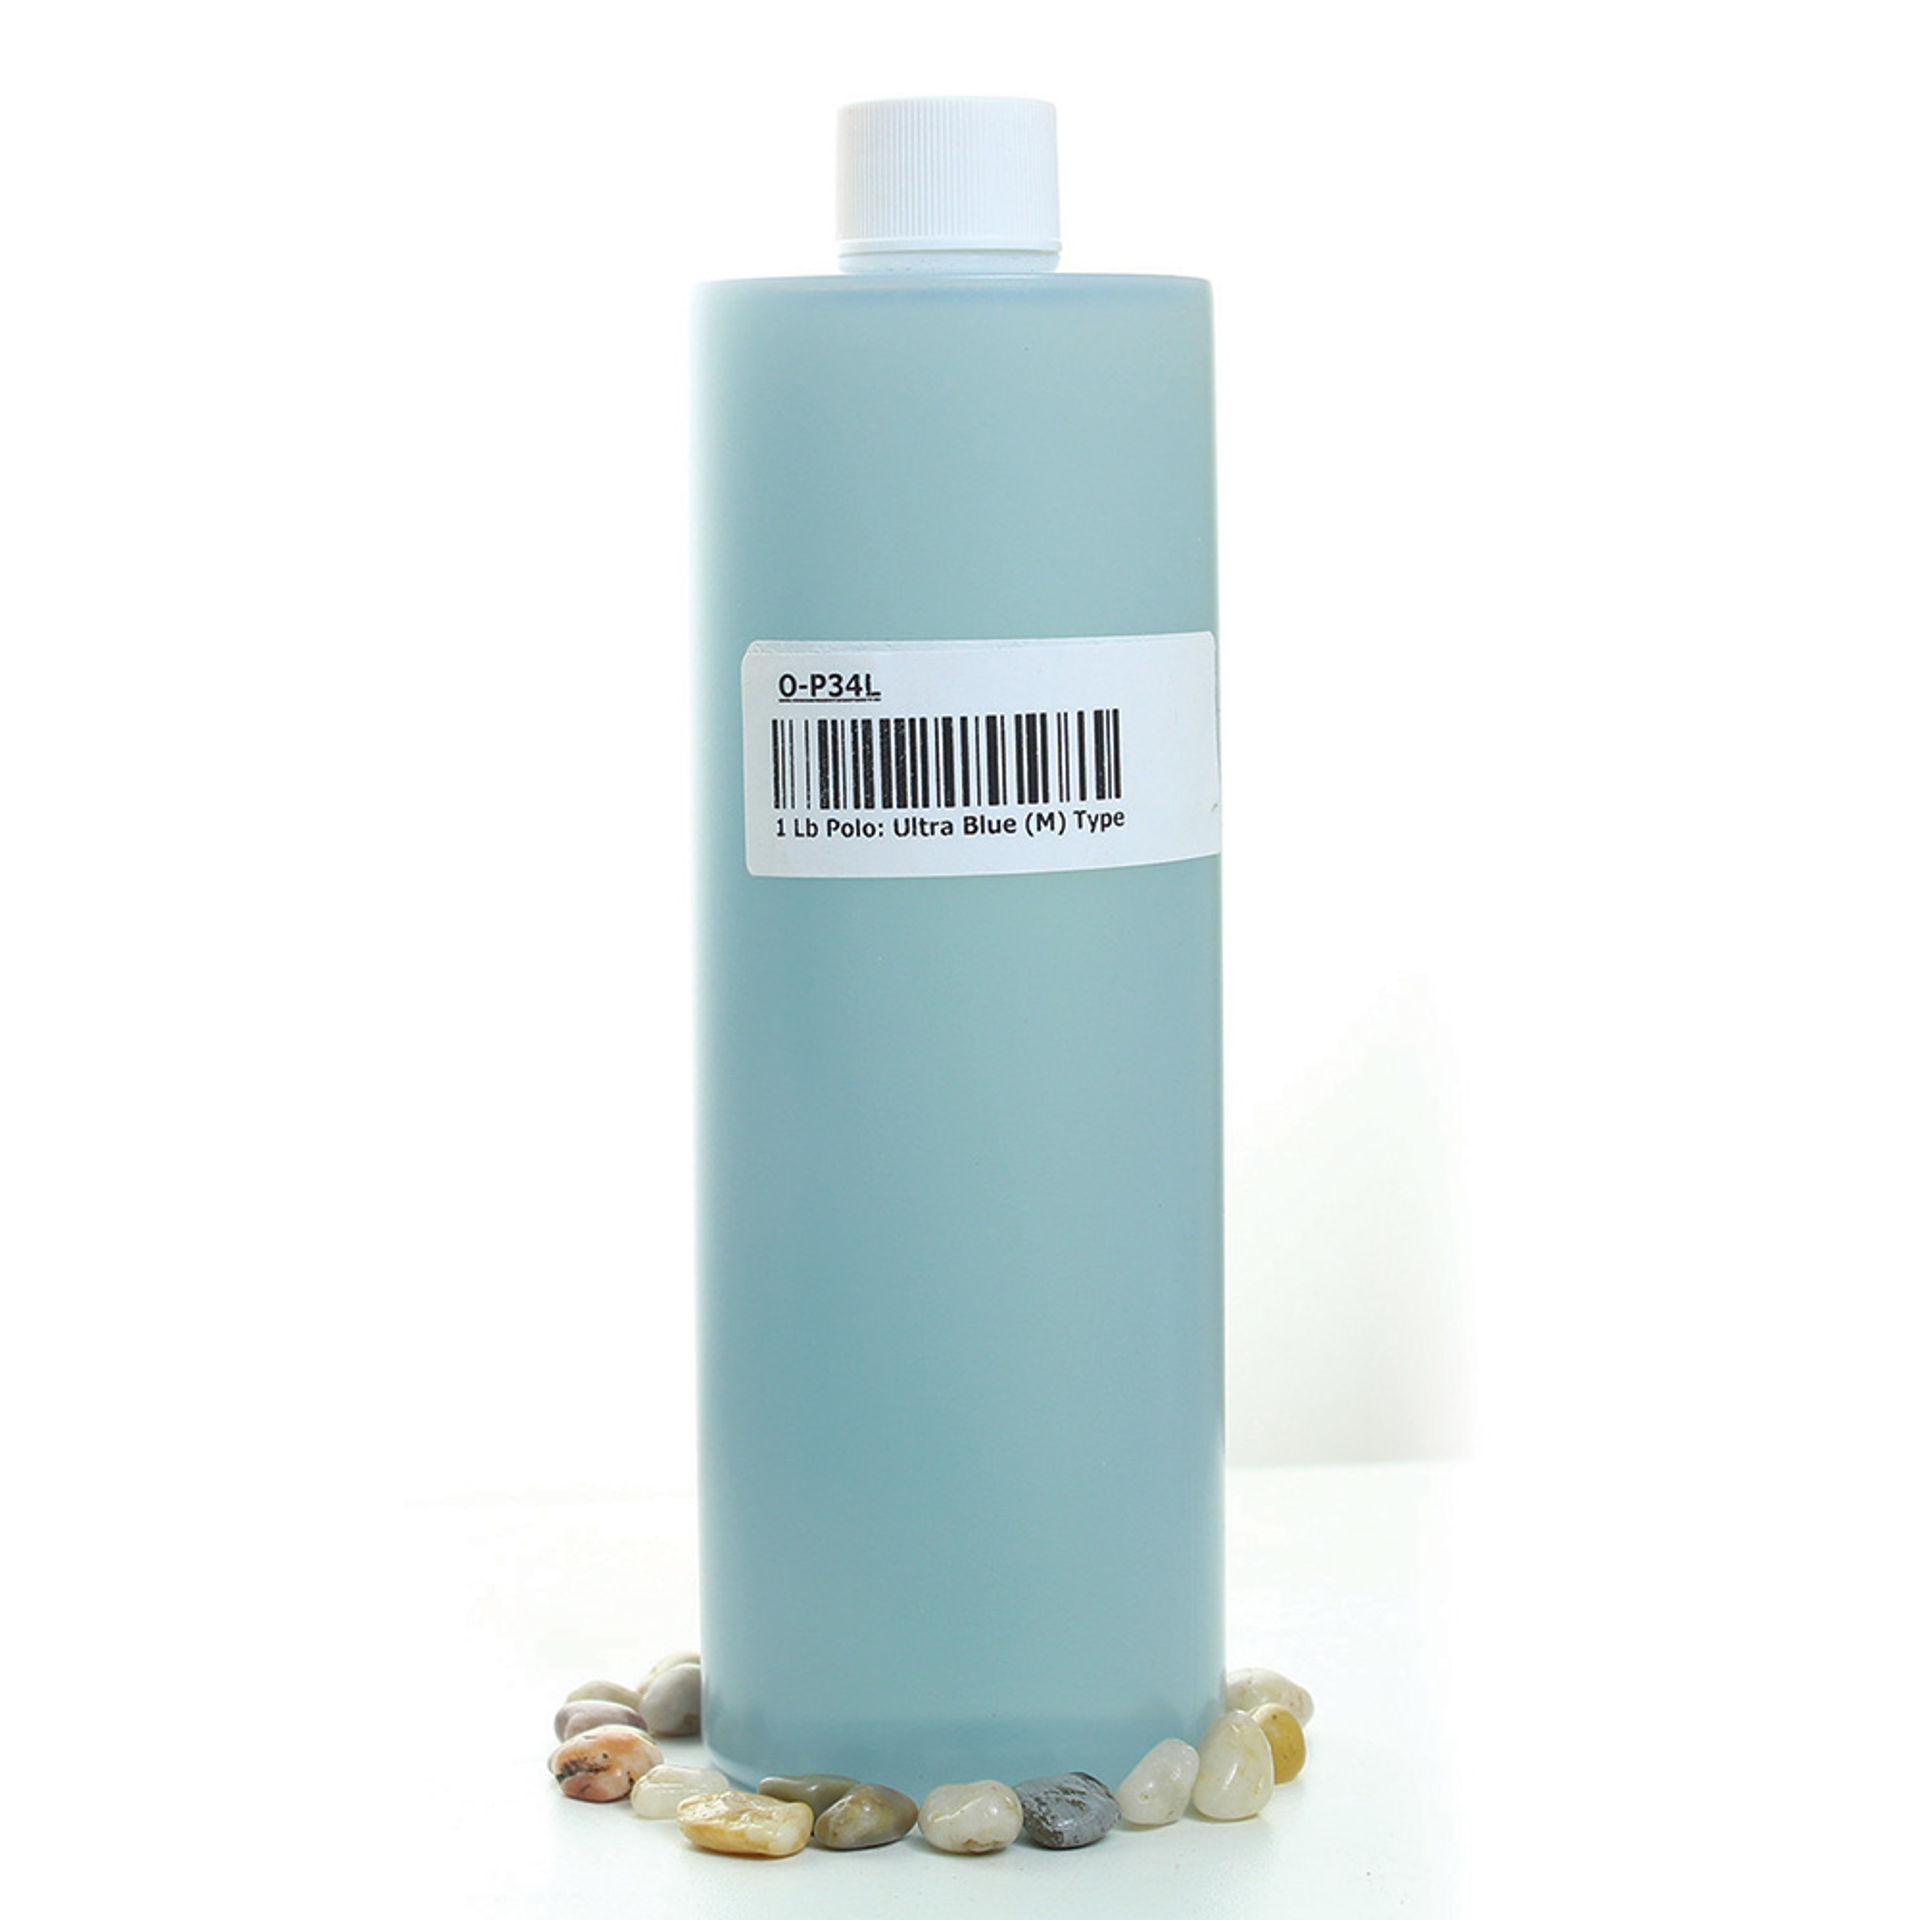 Picture of 1 Lb Polo: Ultra Blue (M) Type